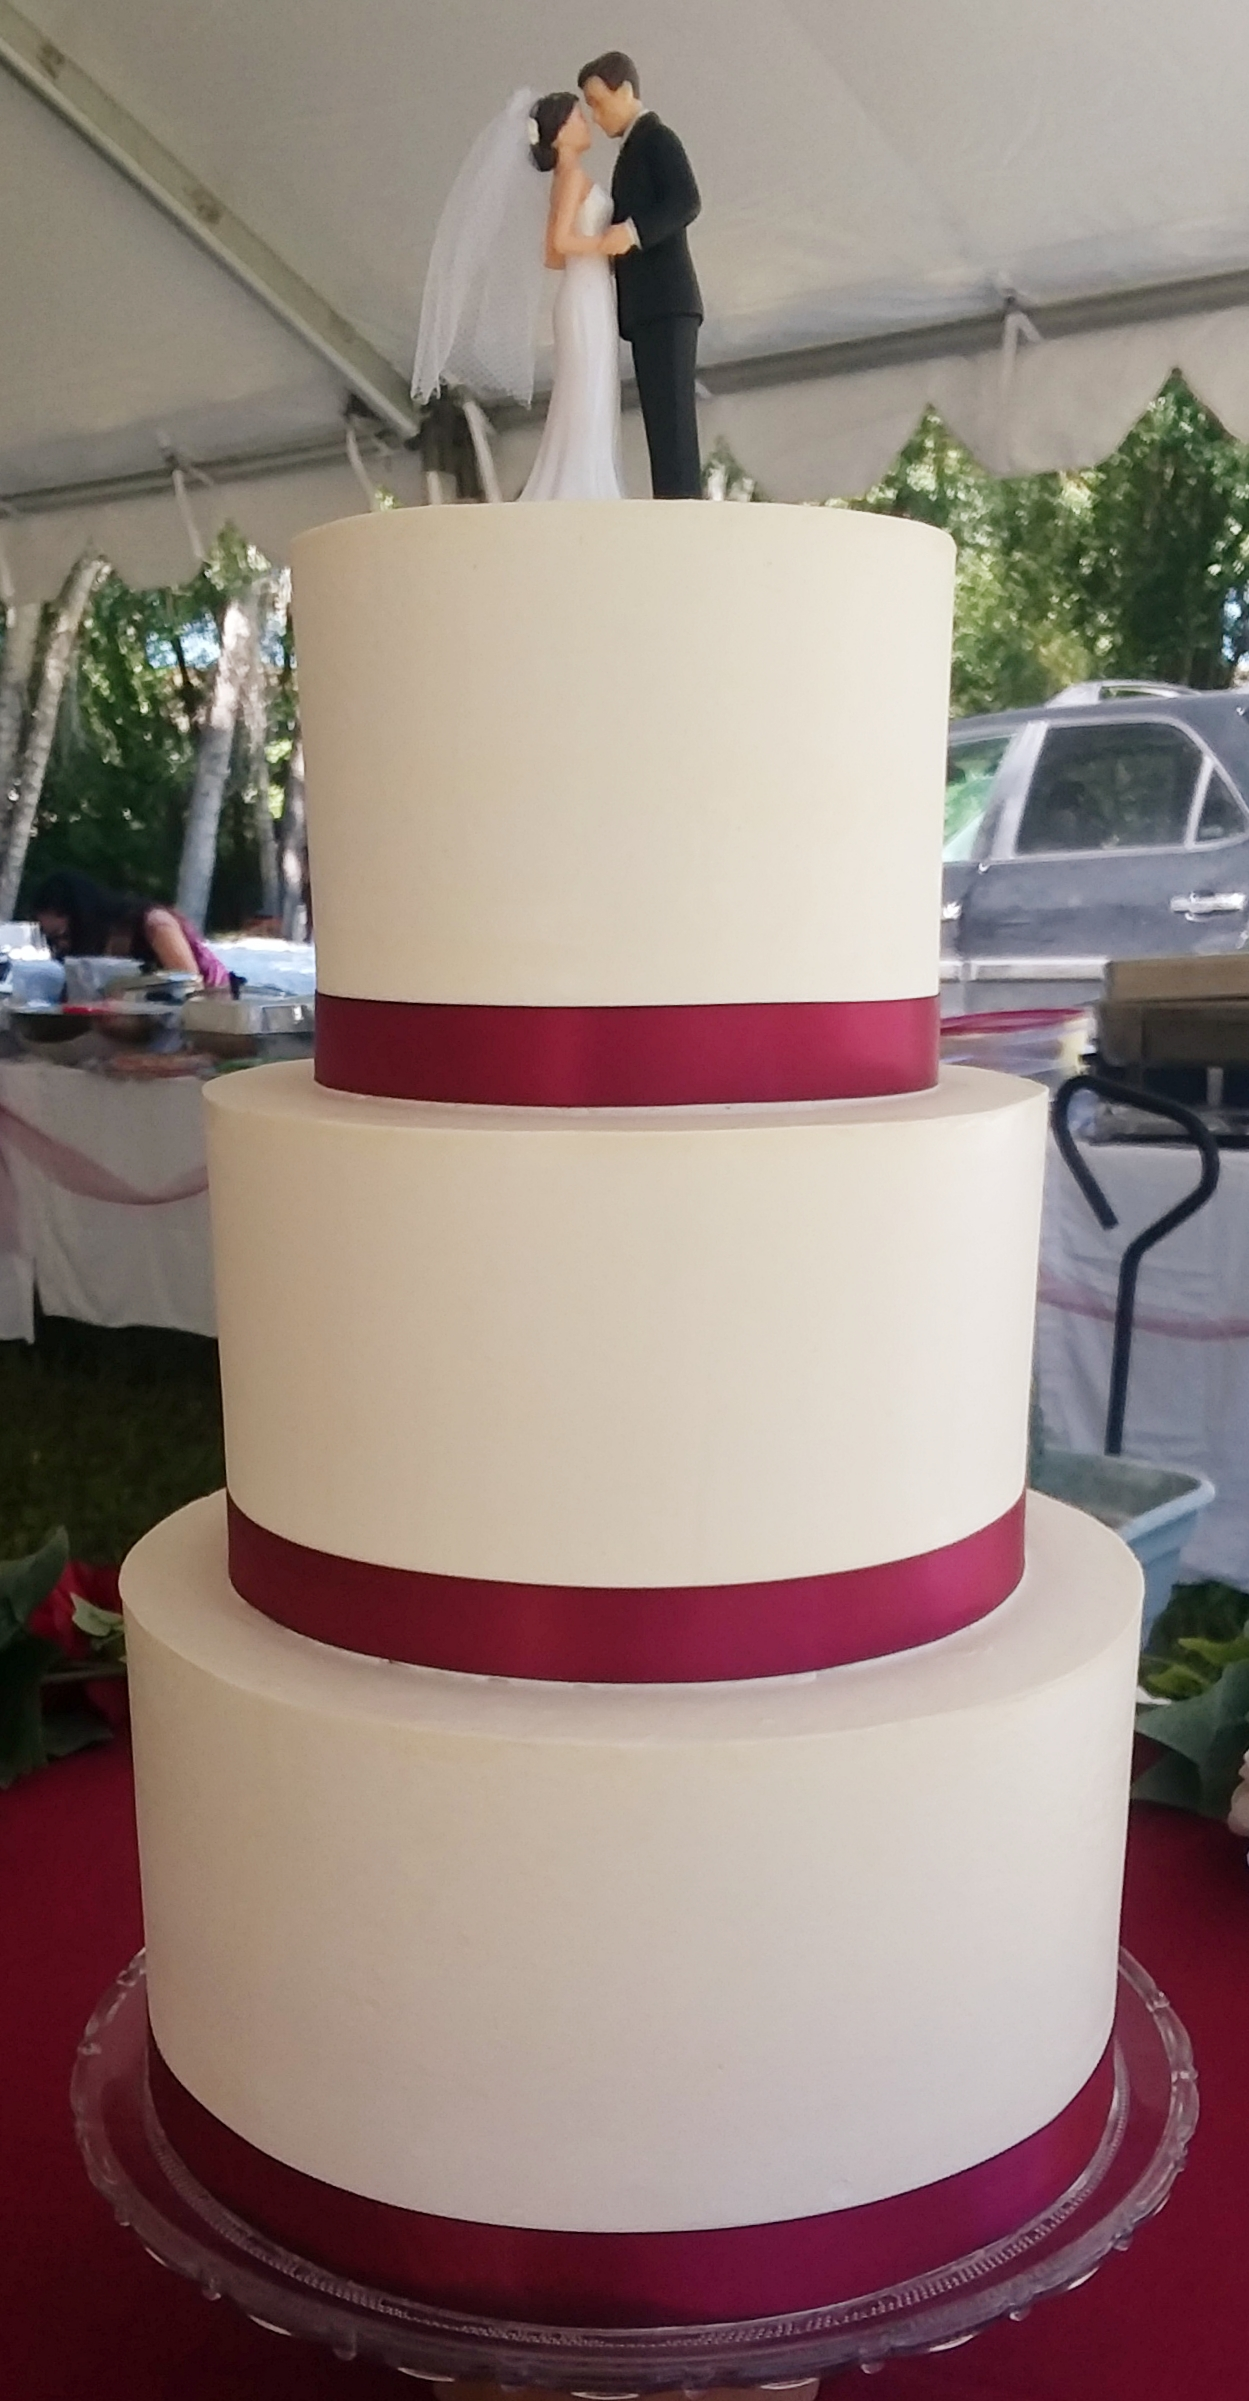 Smooth Frost 3-Tier Wedding Cake with Ribbon